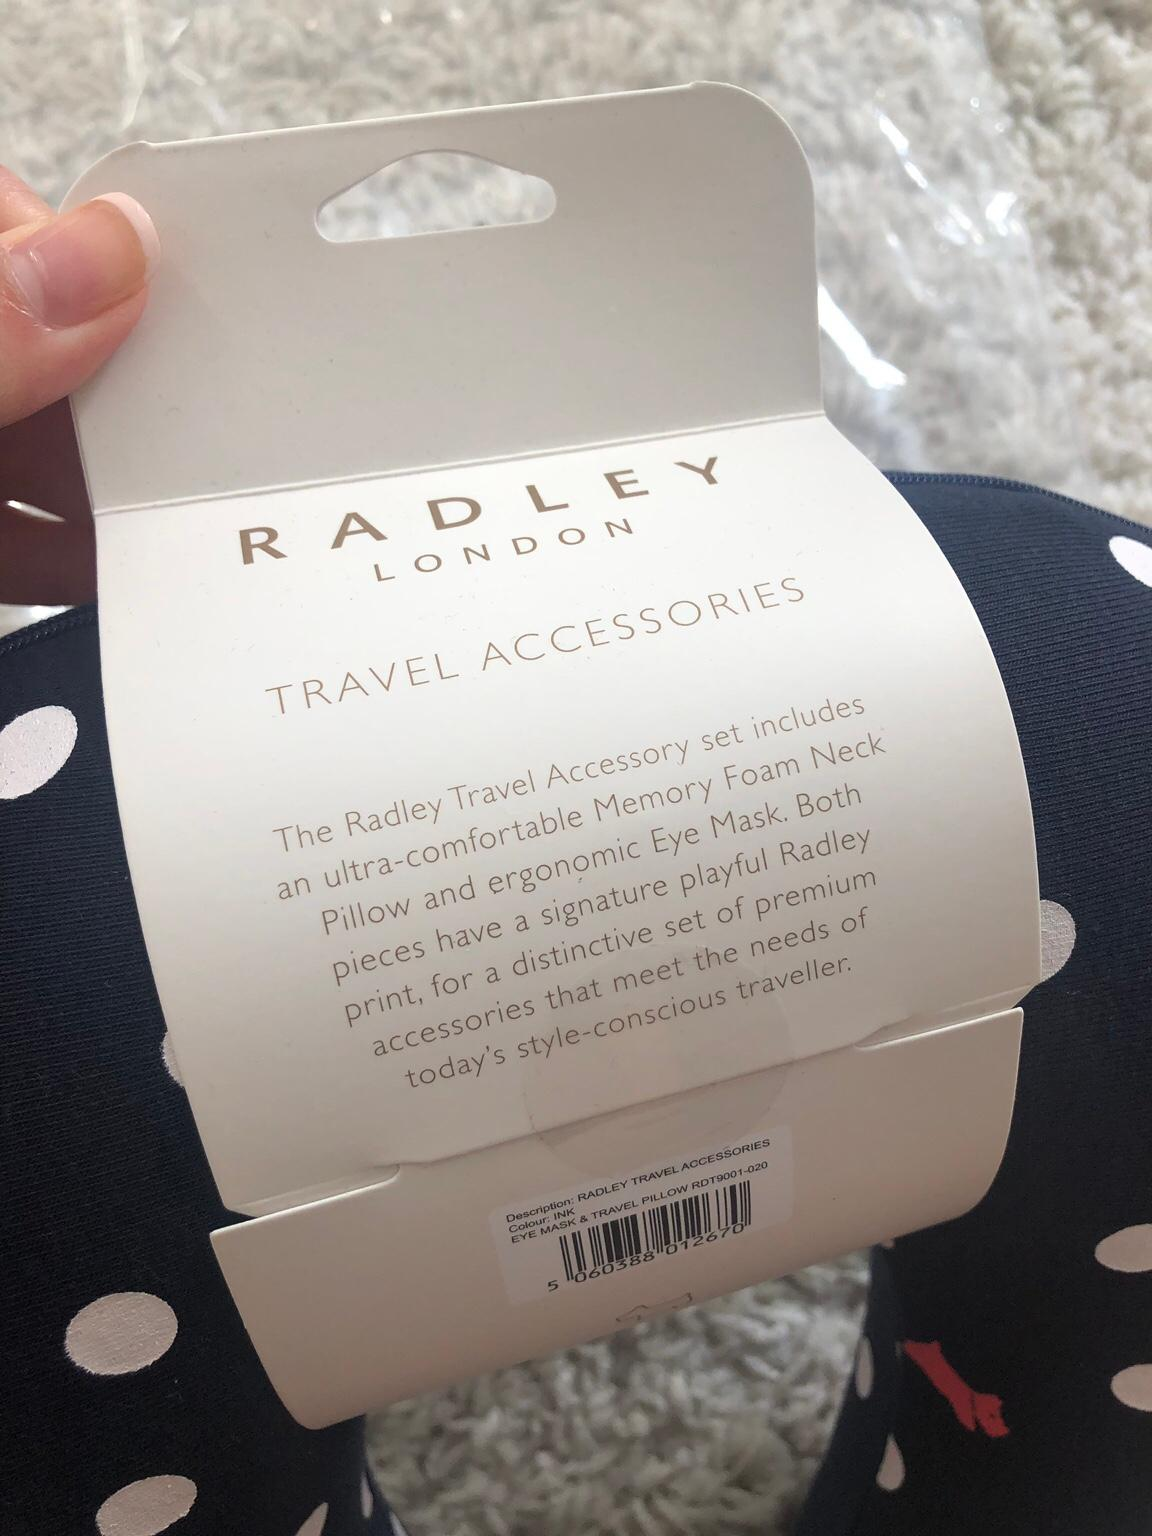 Radley foam neck pillow and eye mask